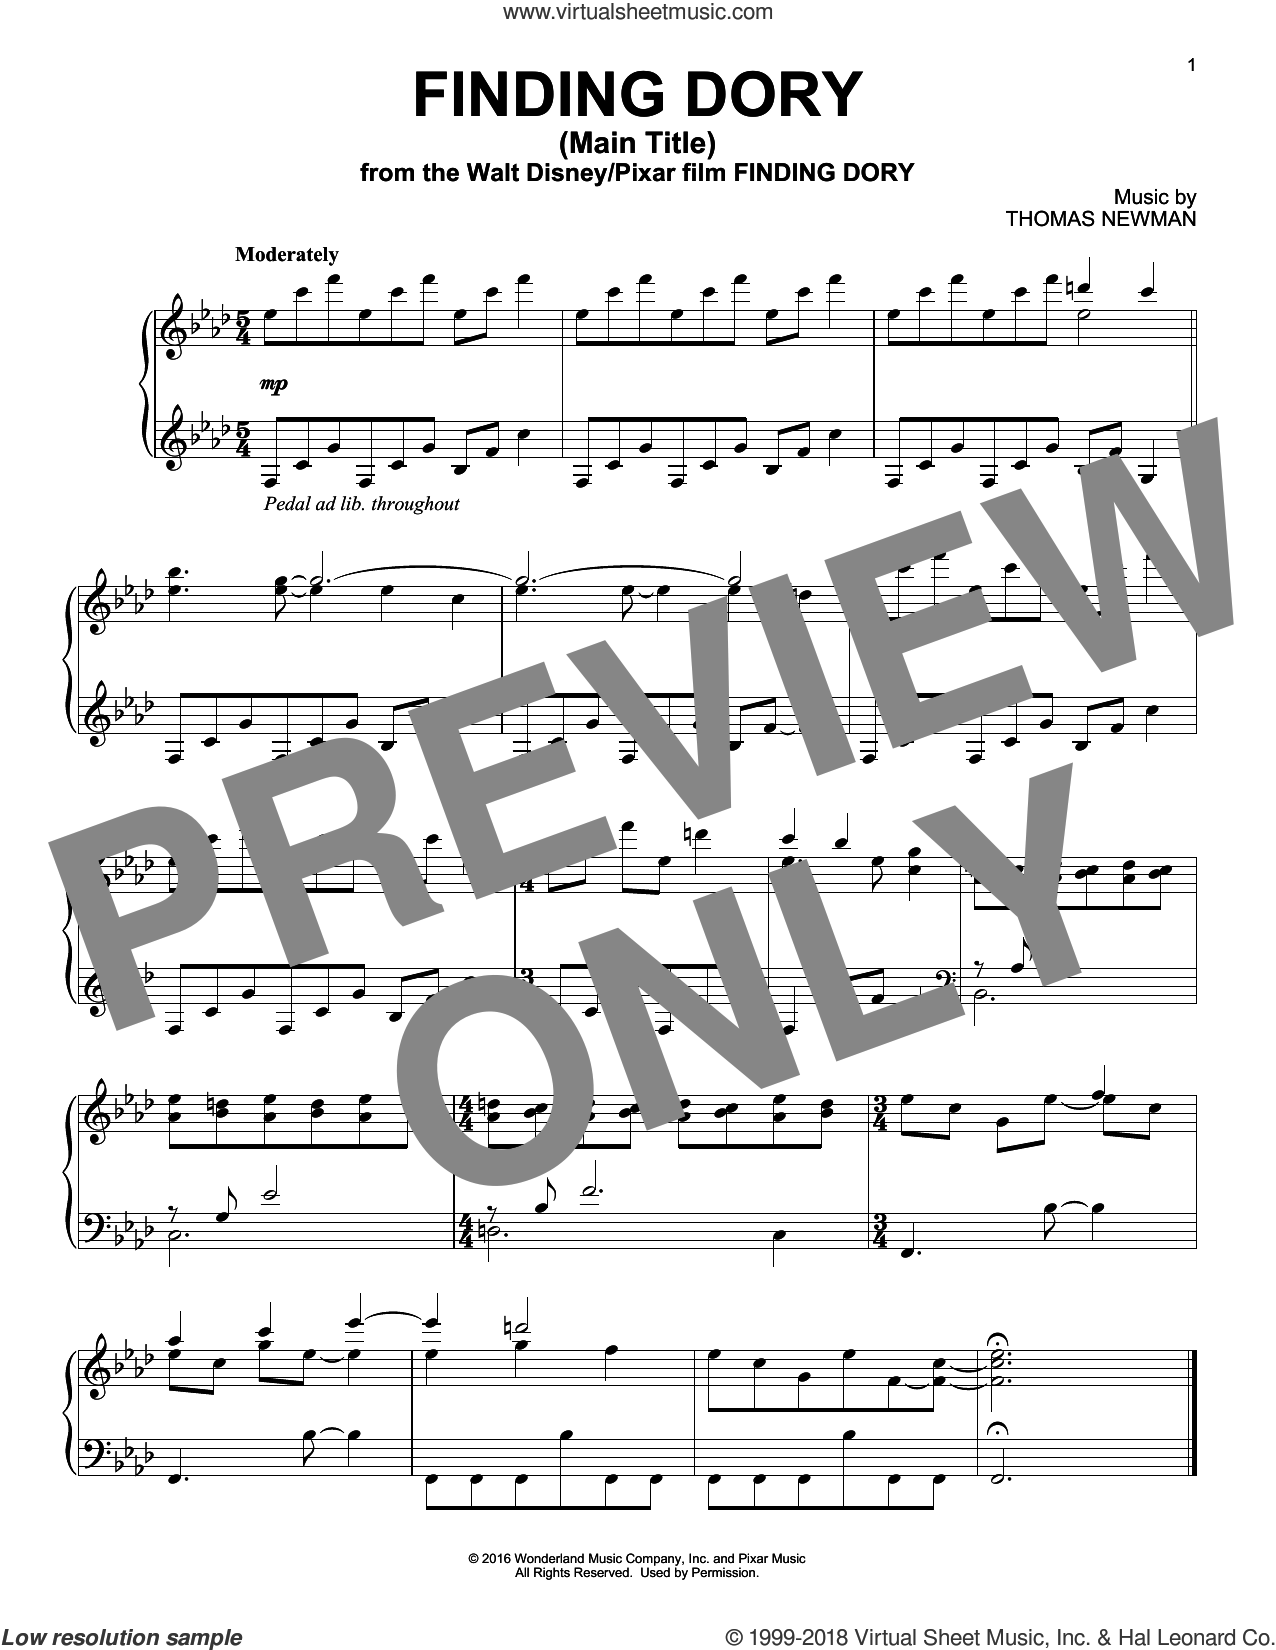 Finding Dory (Main Title), (intermediate) sheet music for piano solo by Thomas Newman, intermediate skill level